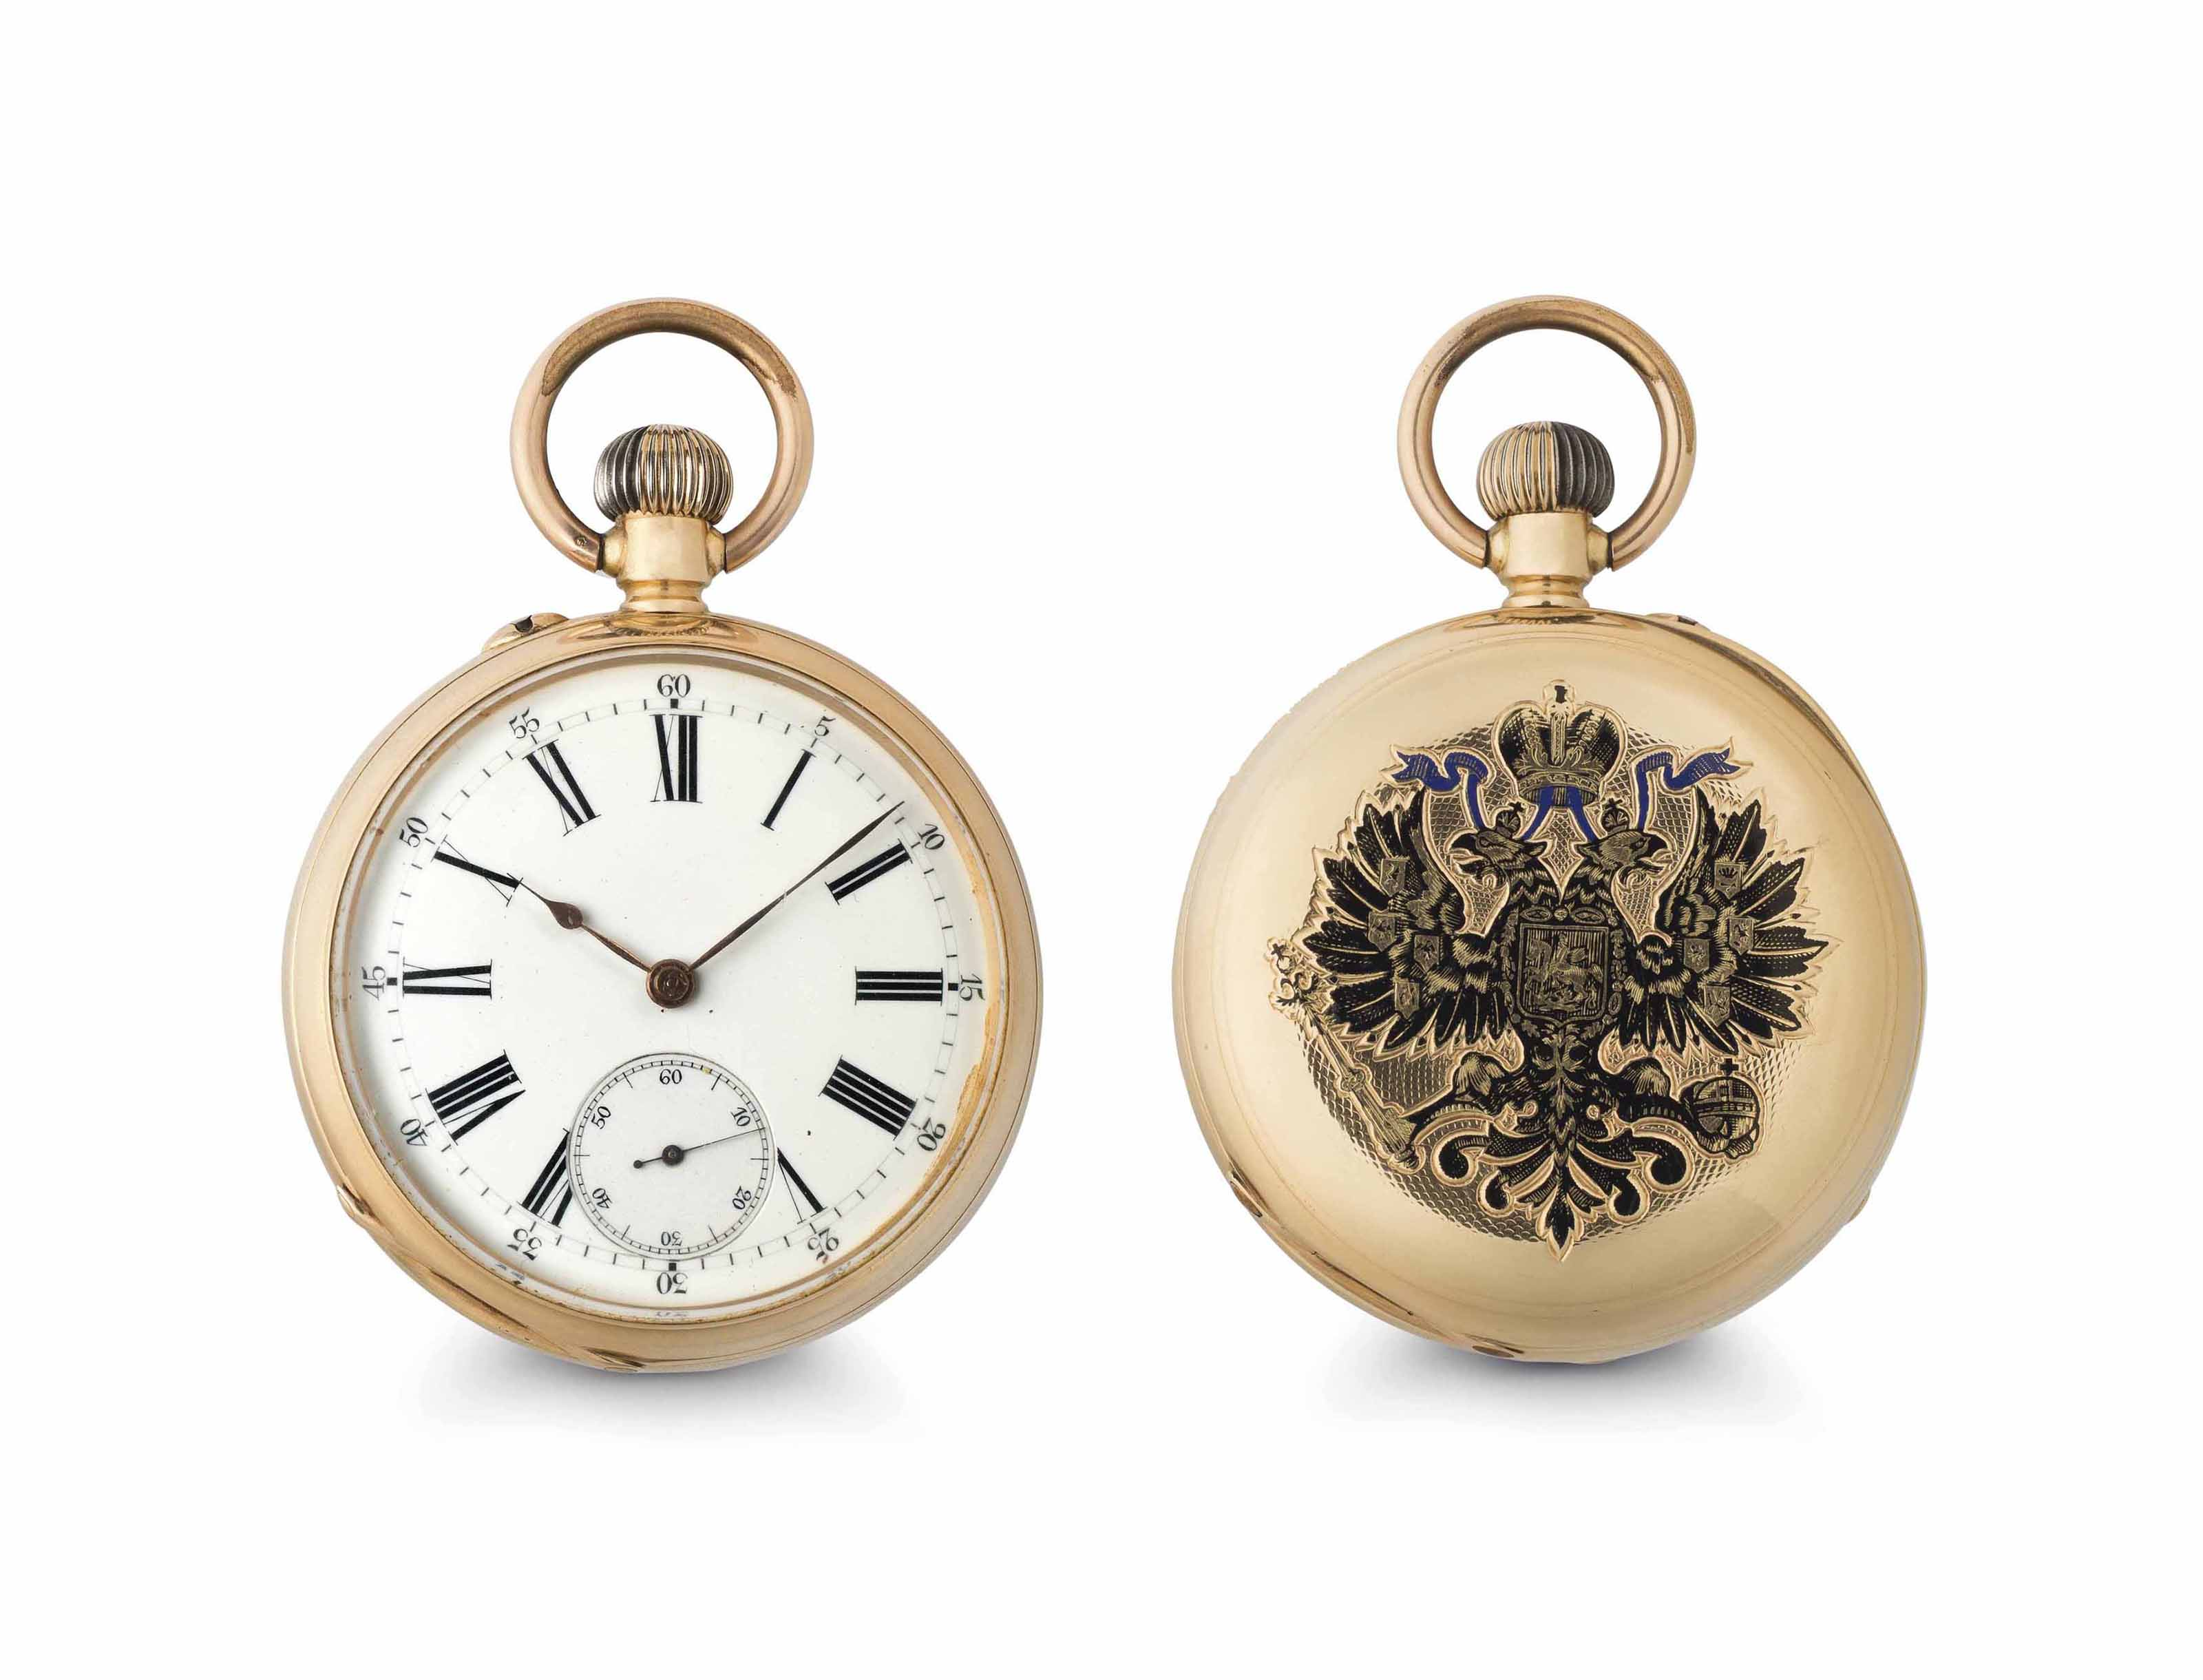 Pavel Buhre. A Fine 14k Pink Gold and Enamel Openface Keyless Lever Pocket Watch